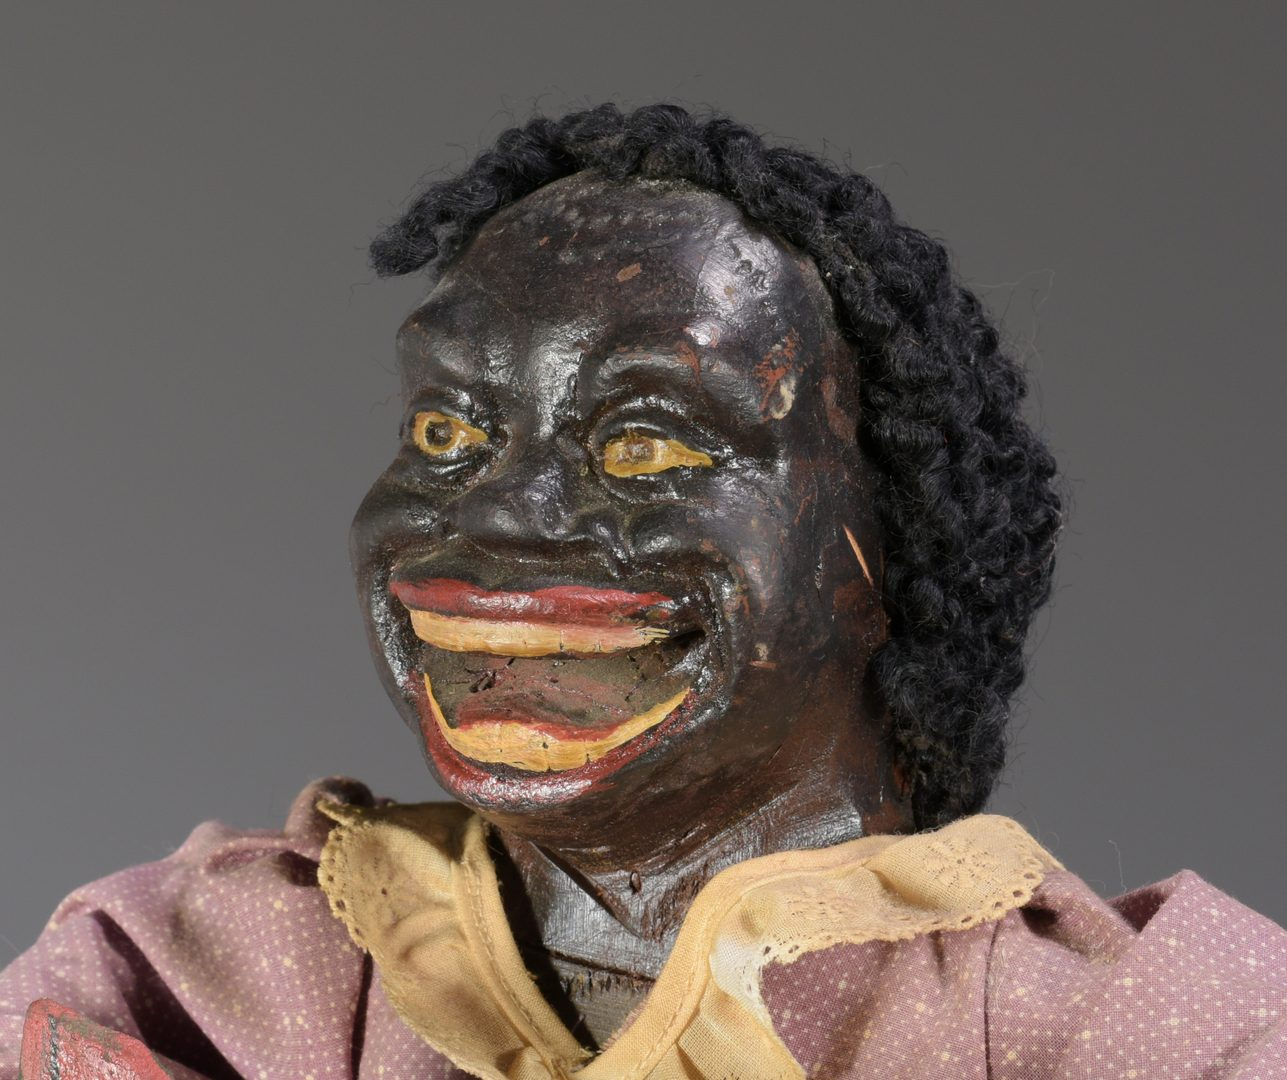 Lot 564: Black Americana Doll with Watermelon